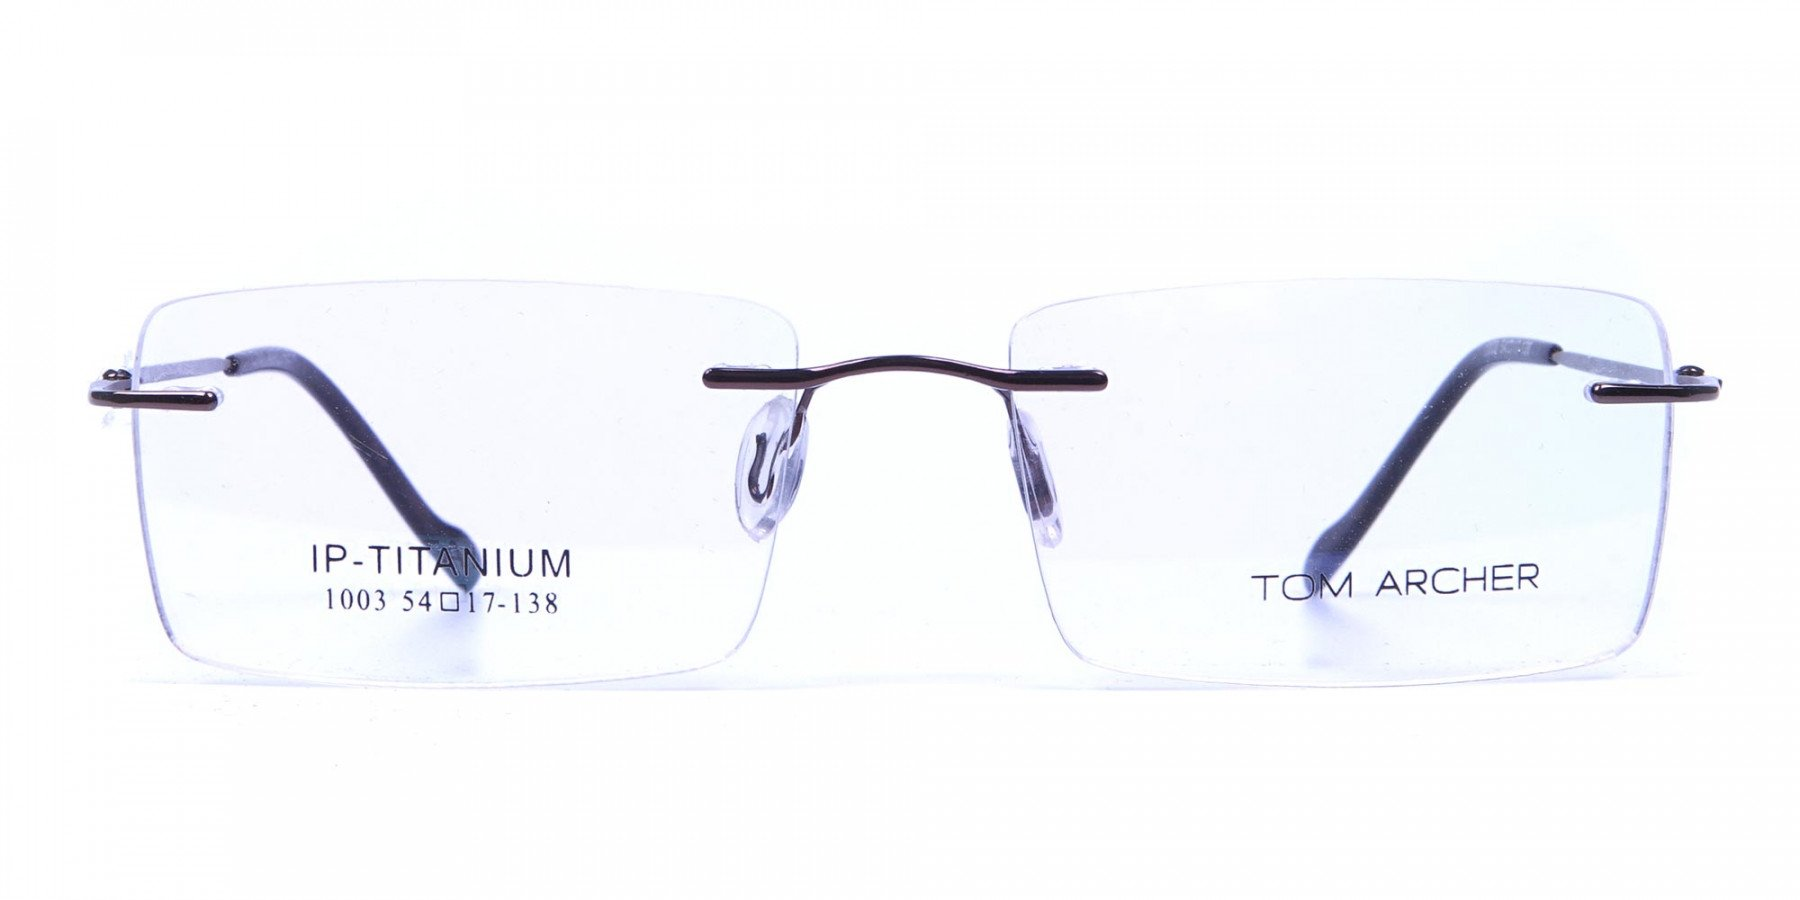 Rimless Glasses in Brown for Men & Women -1